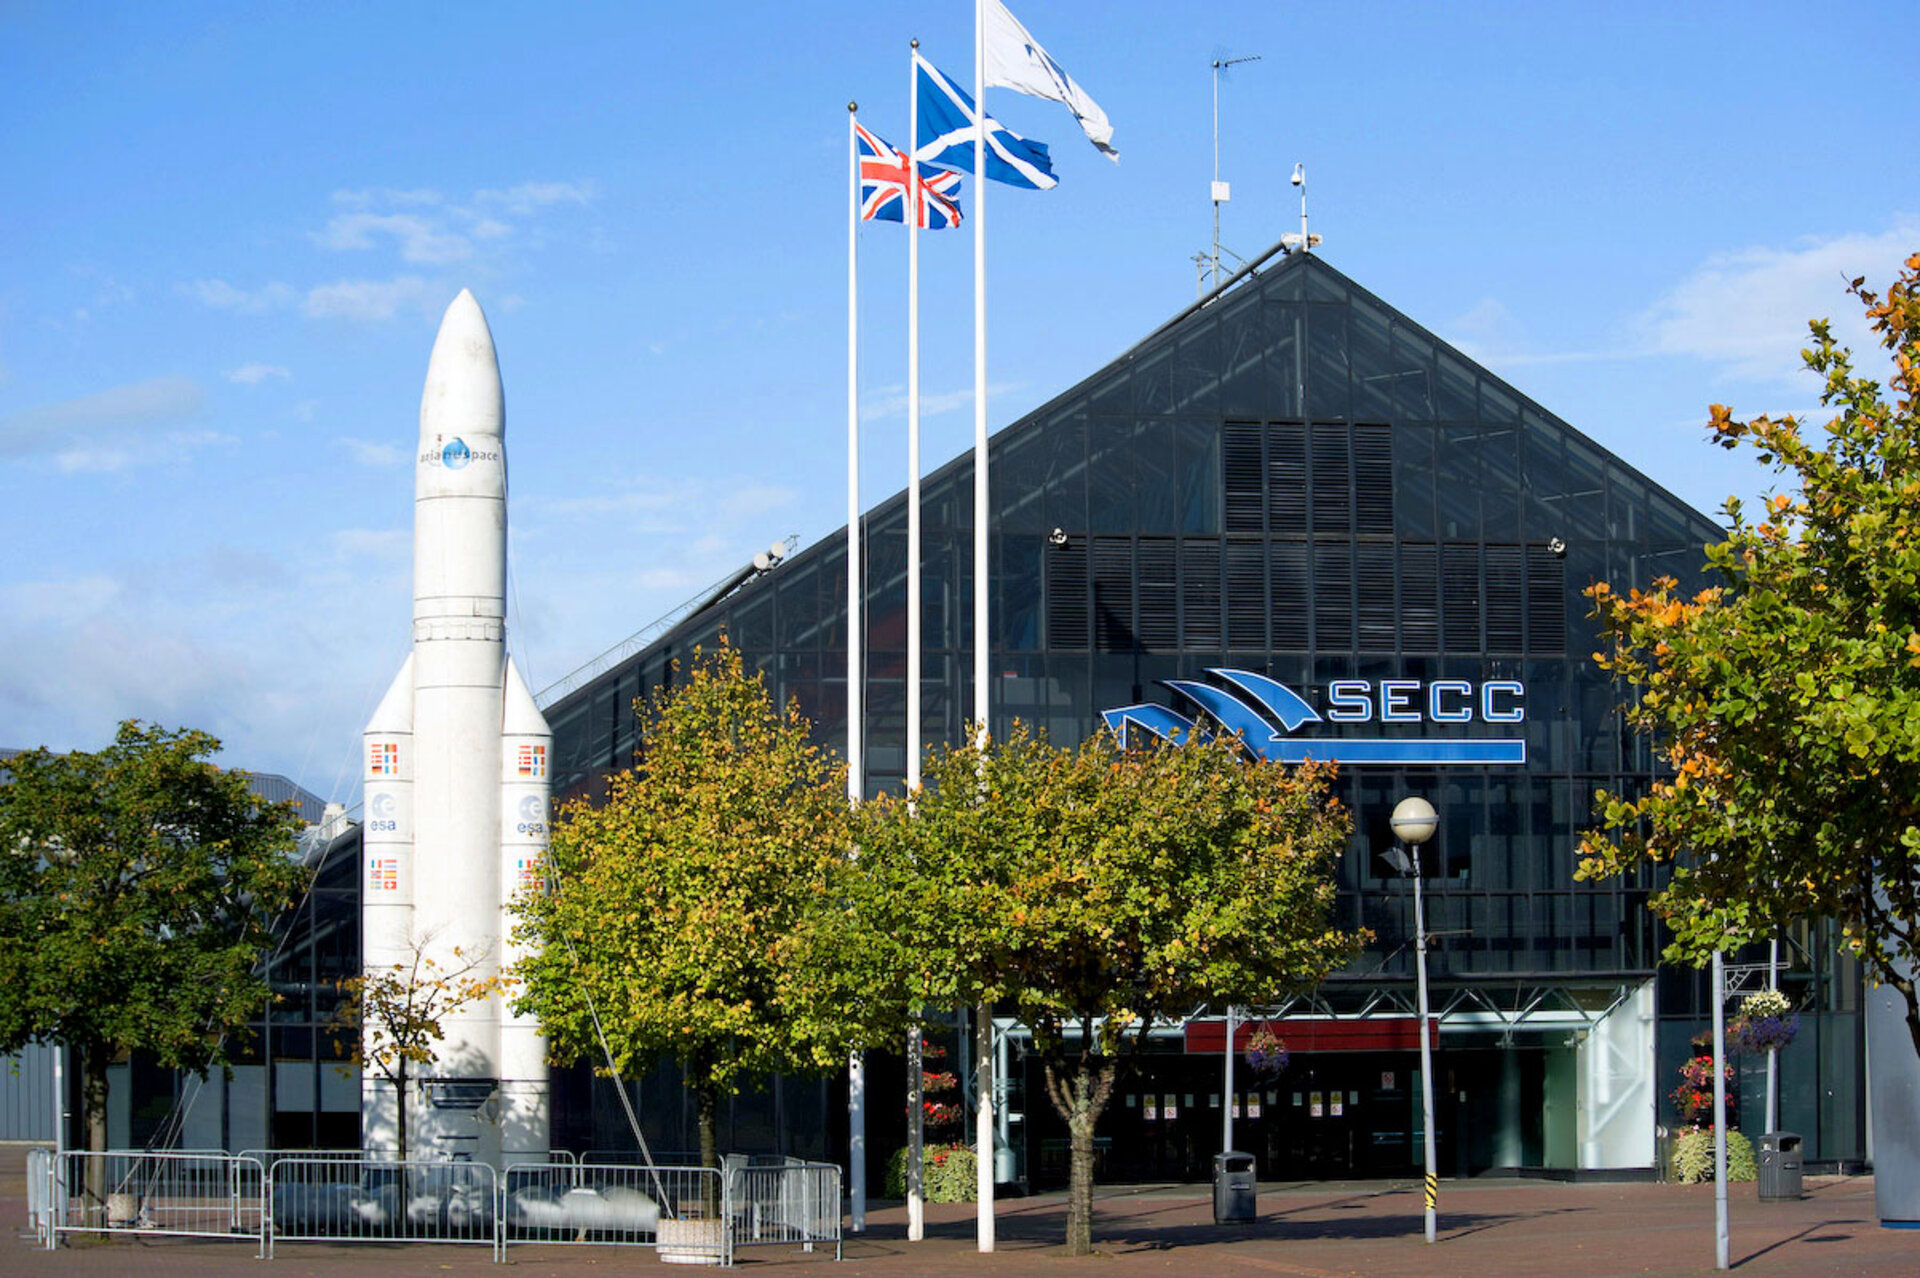 59th IAC, Scottish Exhibition and Conference Centre